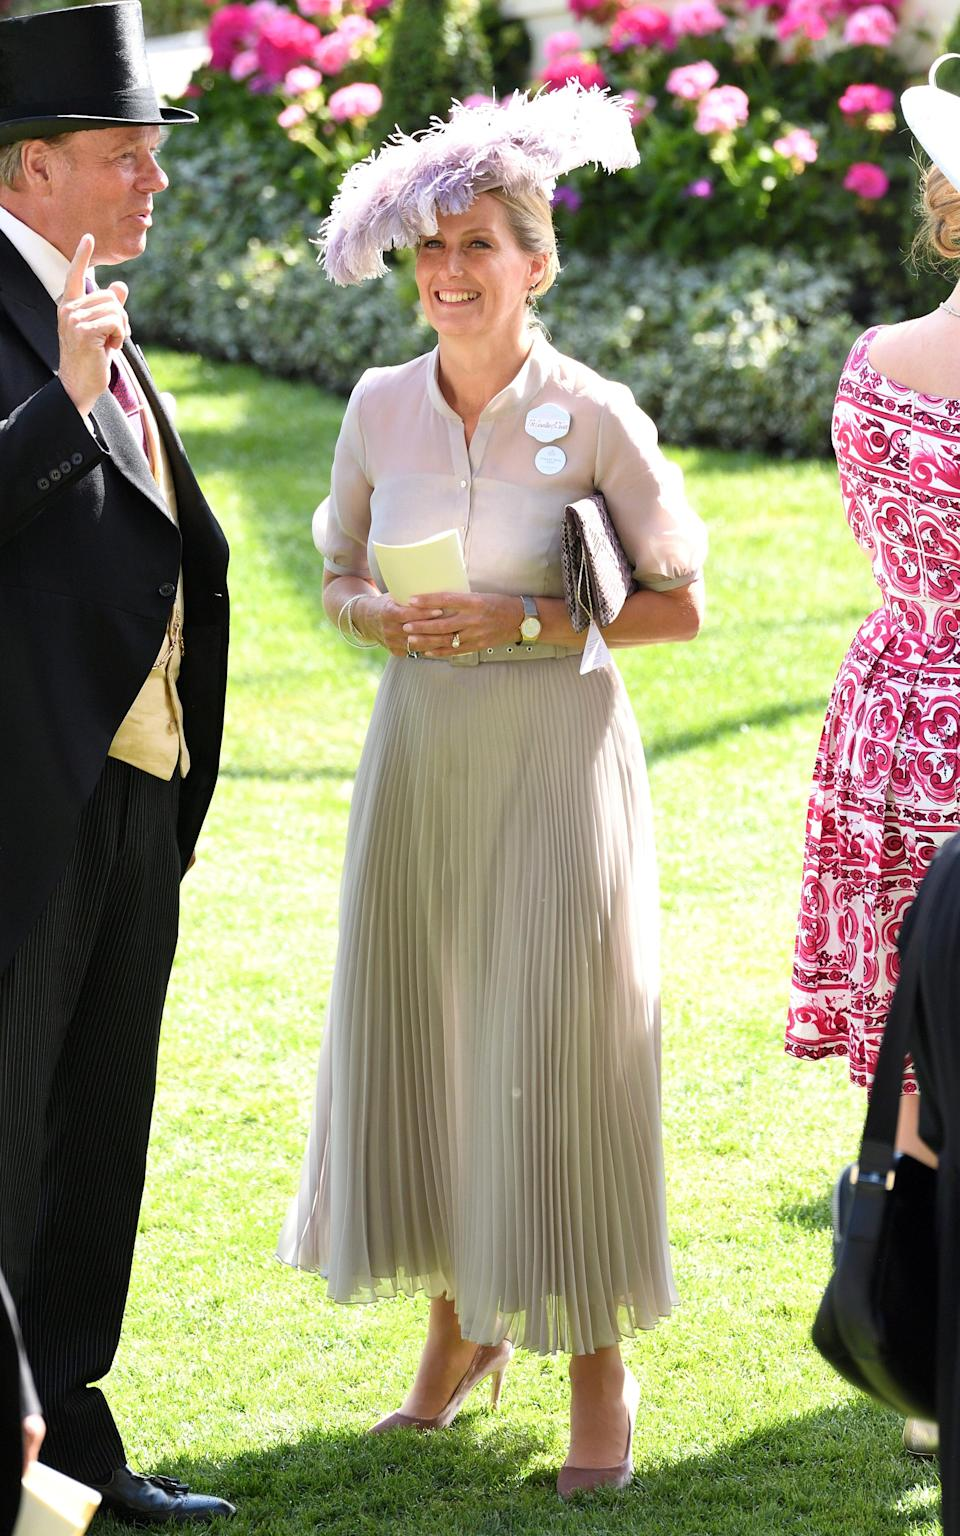 Sophie, Countess of Wessex attends Royal Ascot Day 3 at Ascot Racecourse - Karwai Tang